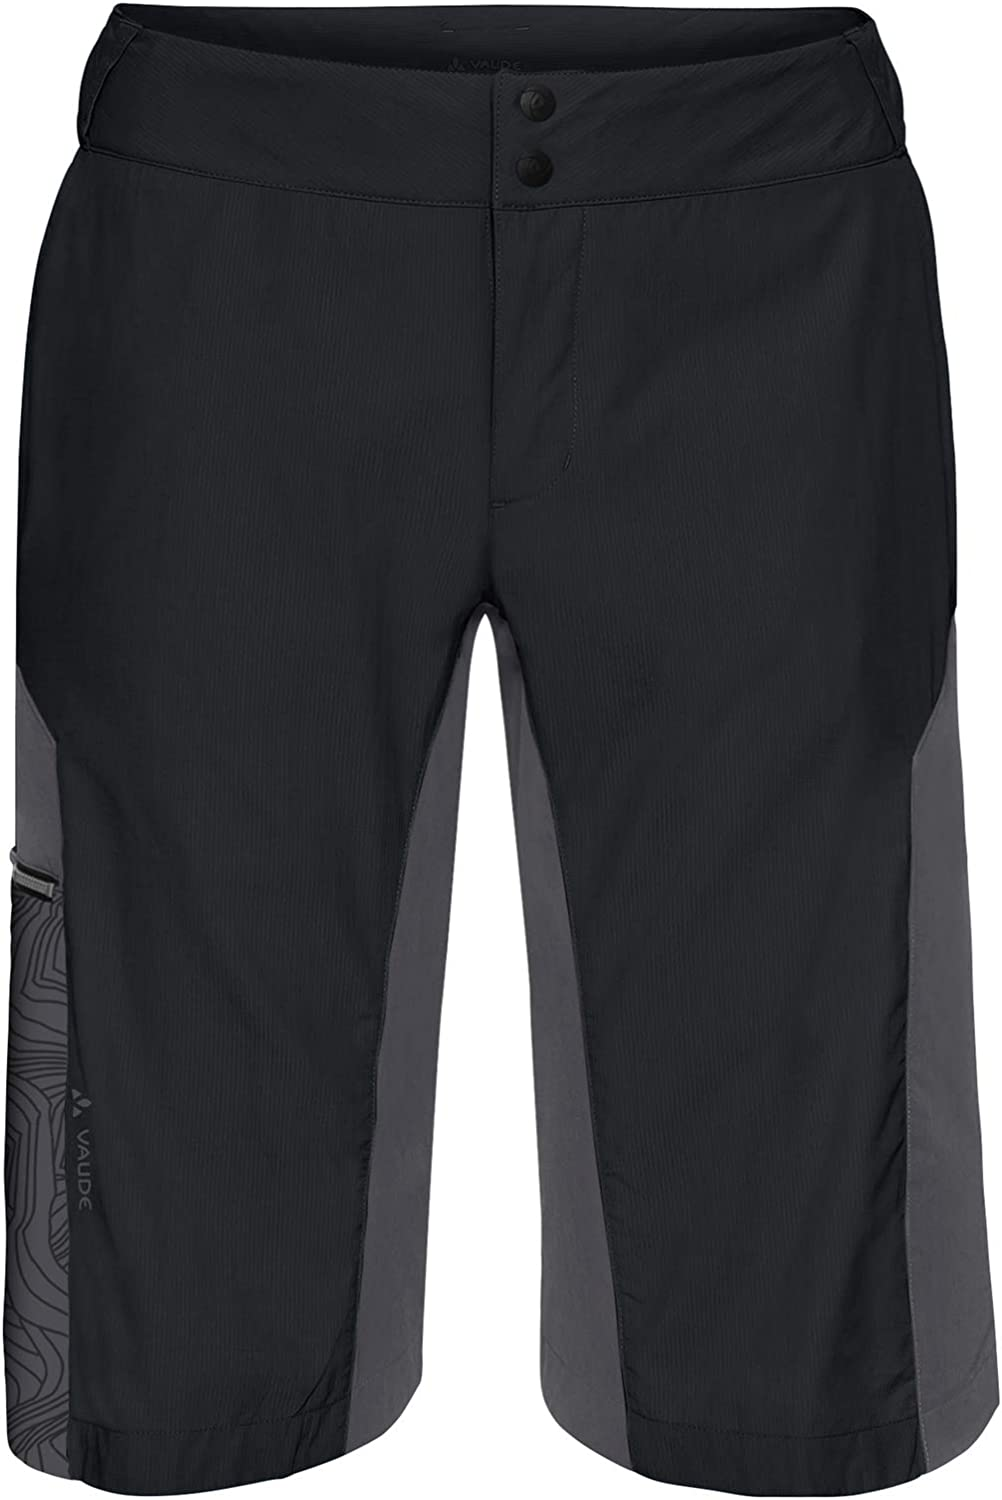 Vaude Men's Downieville, Enduro-Shorts Zum Mountainbiken Trousers